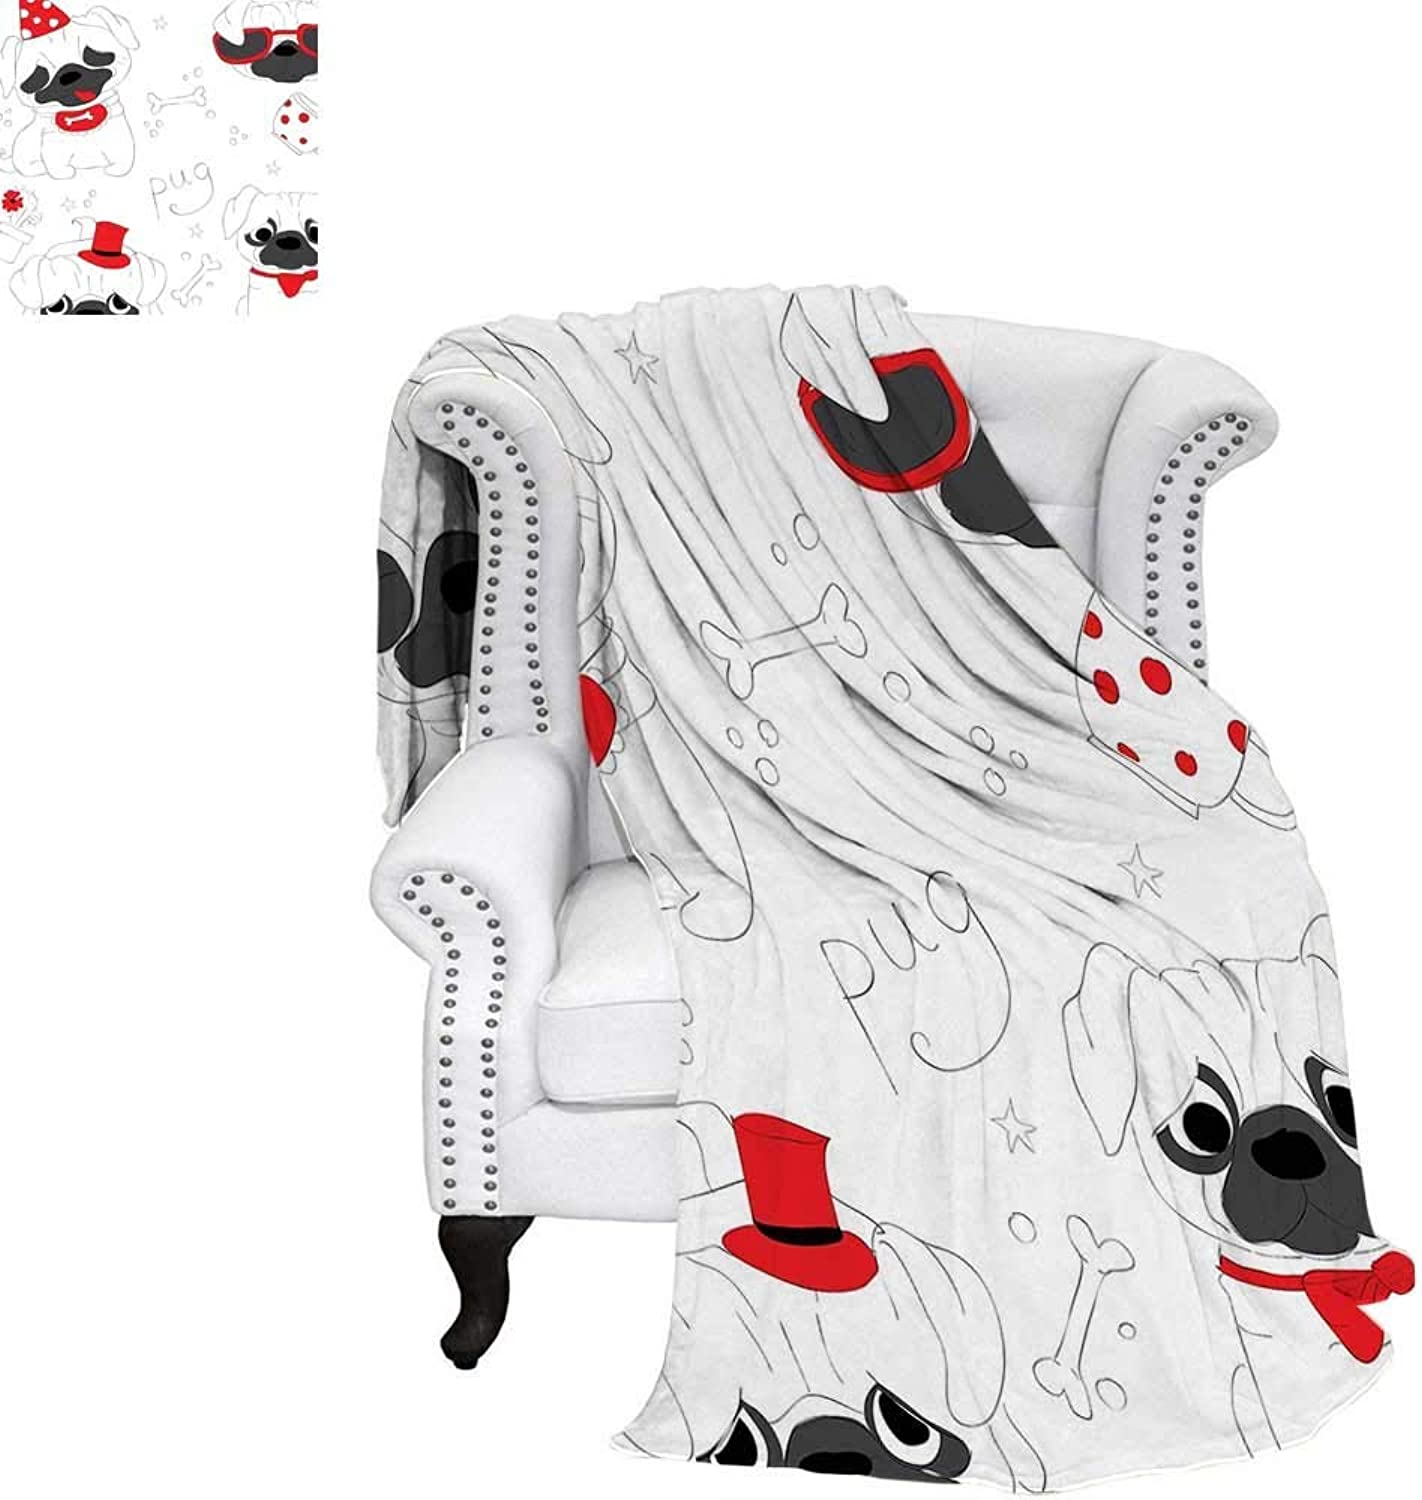 CHASOEA Pug Velvet Plush Throw Blanket Dogs in Various States Sad Happy Cool Excited Dog Bone Dotted Mug Caricature Style Weave Pattern Blanket 62 x60  Black Red White